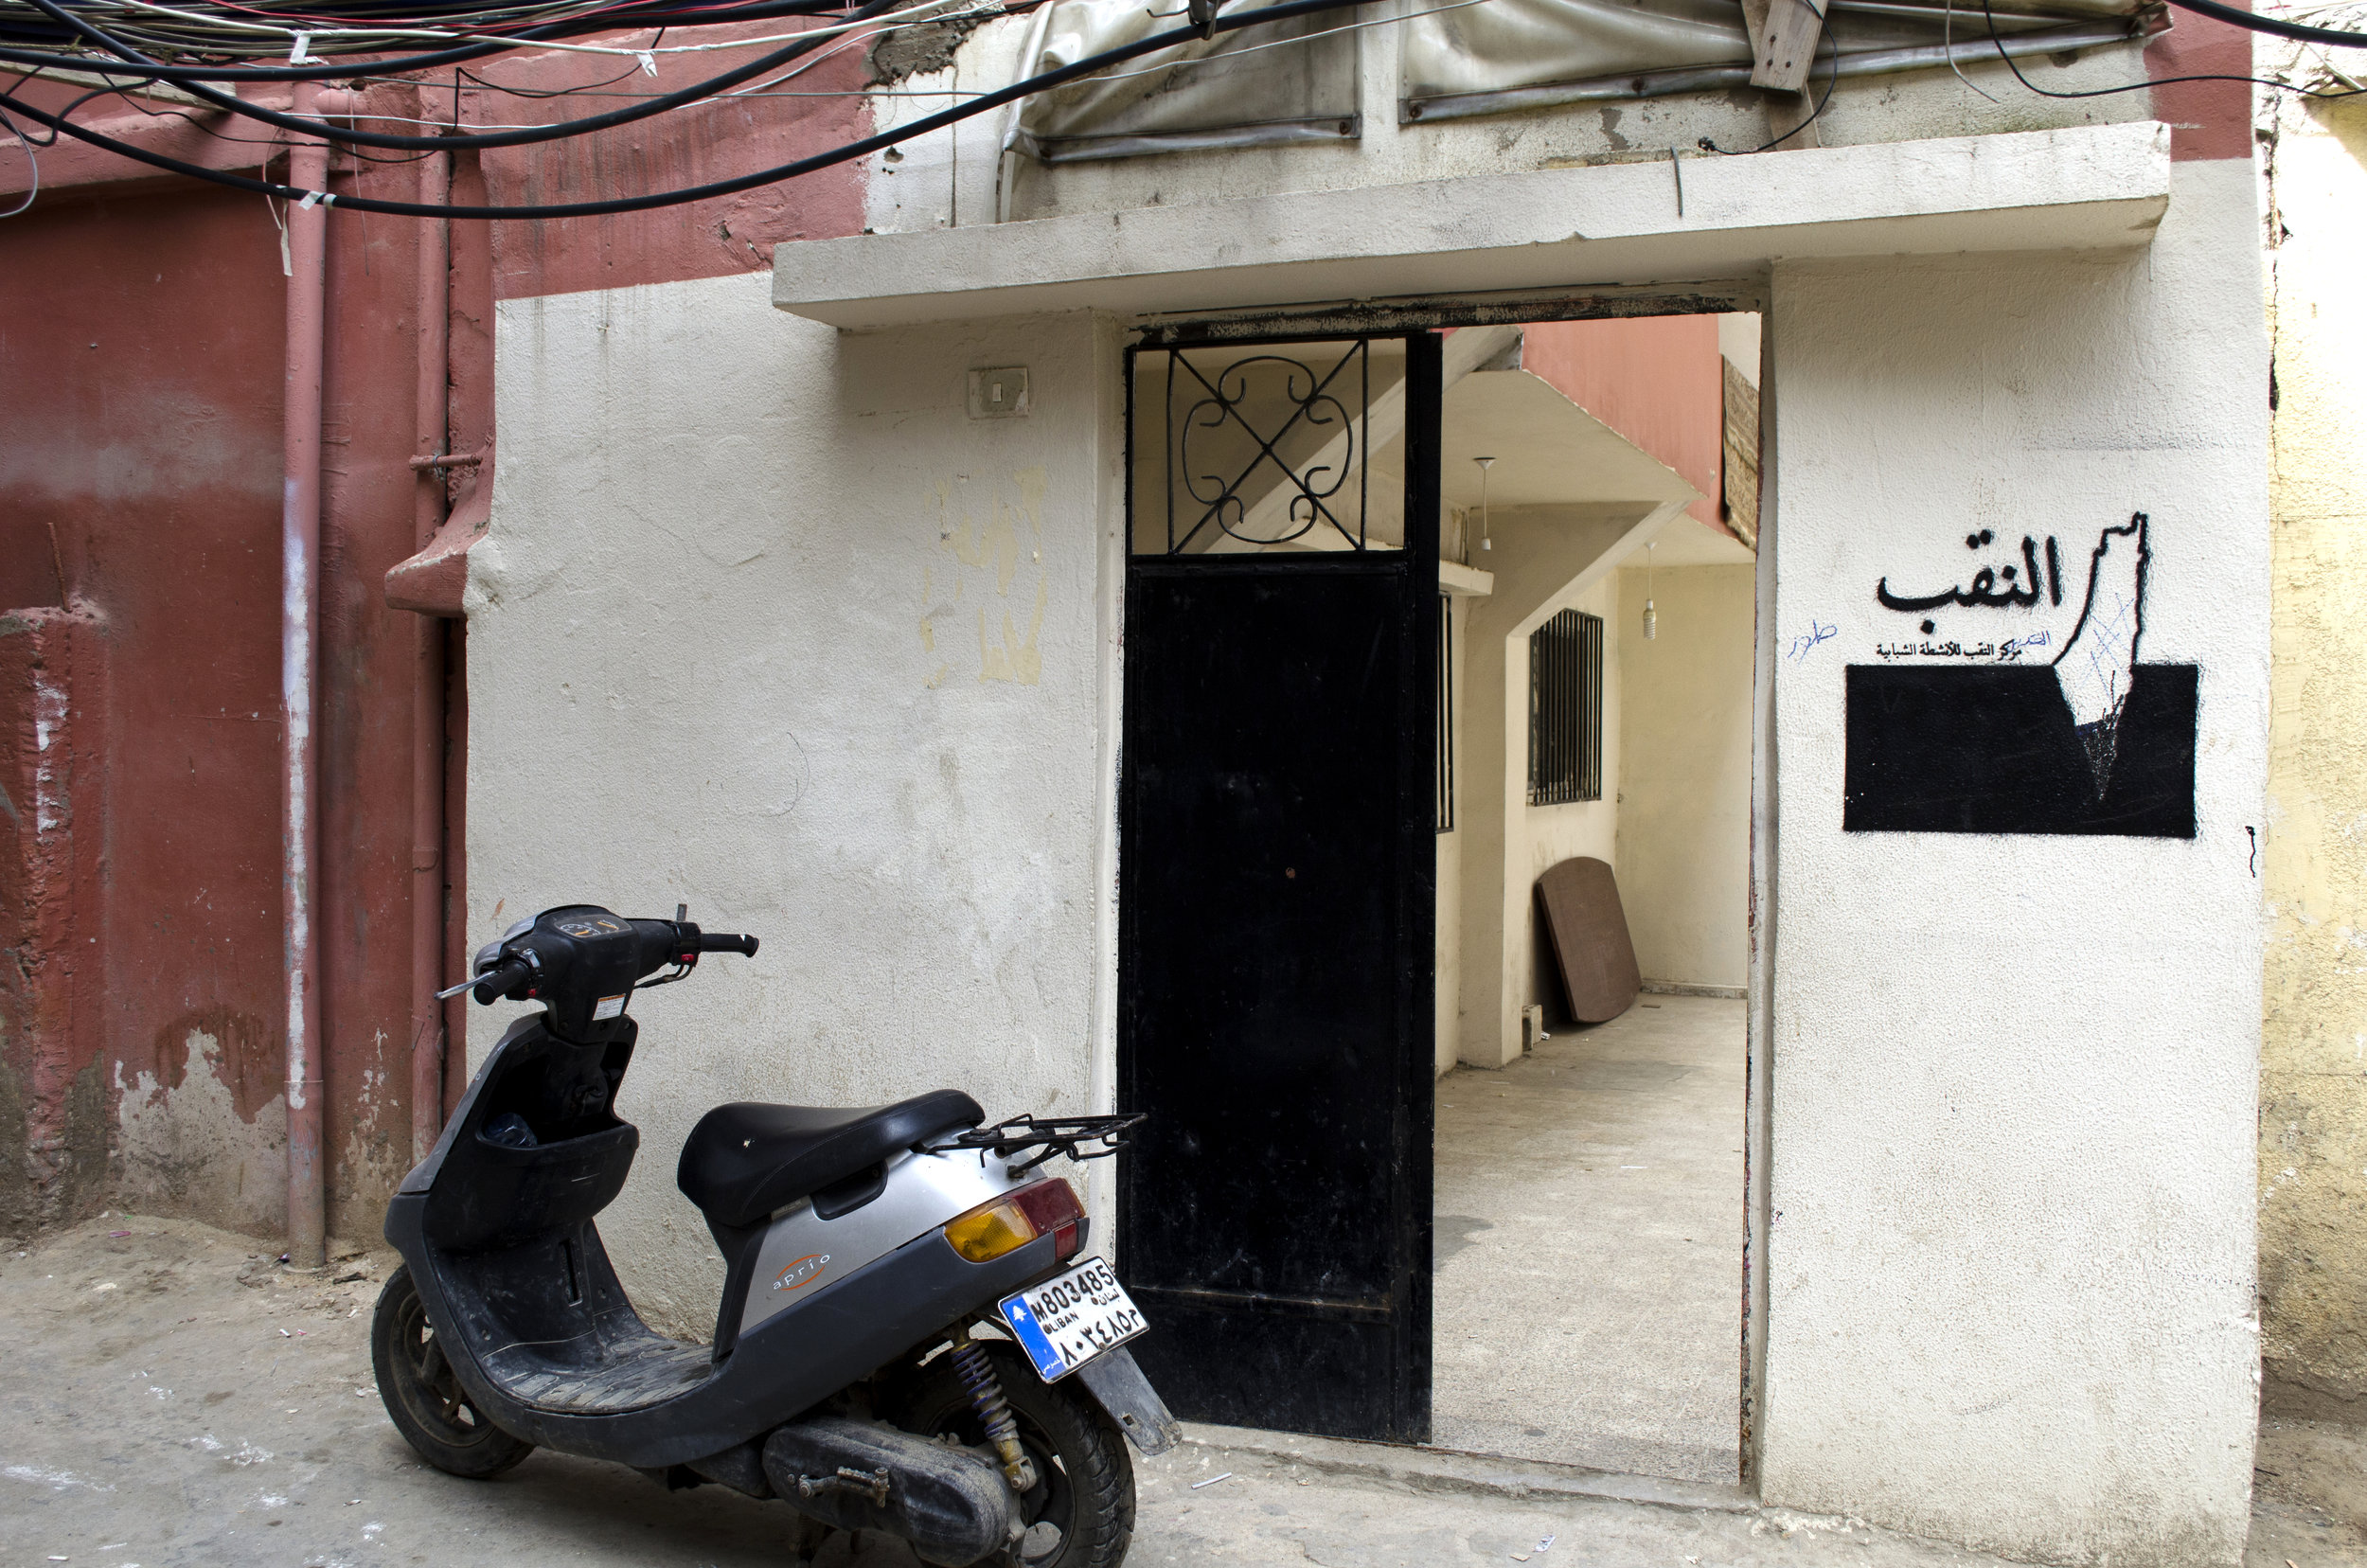 Al Naqab Center for Youth Activities is located at the end of an alley, not far from the entrance of the Burj al-Barajneh Palestinian refugee camp in Lebanon. These days it houses a school for refugee children that fled the war in Syria. (The Daily Star/Antoine Abou-Diwan)